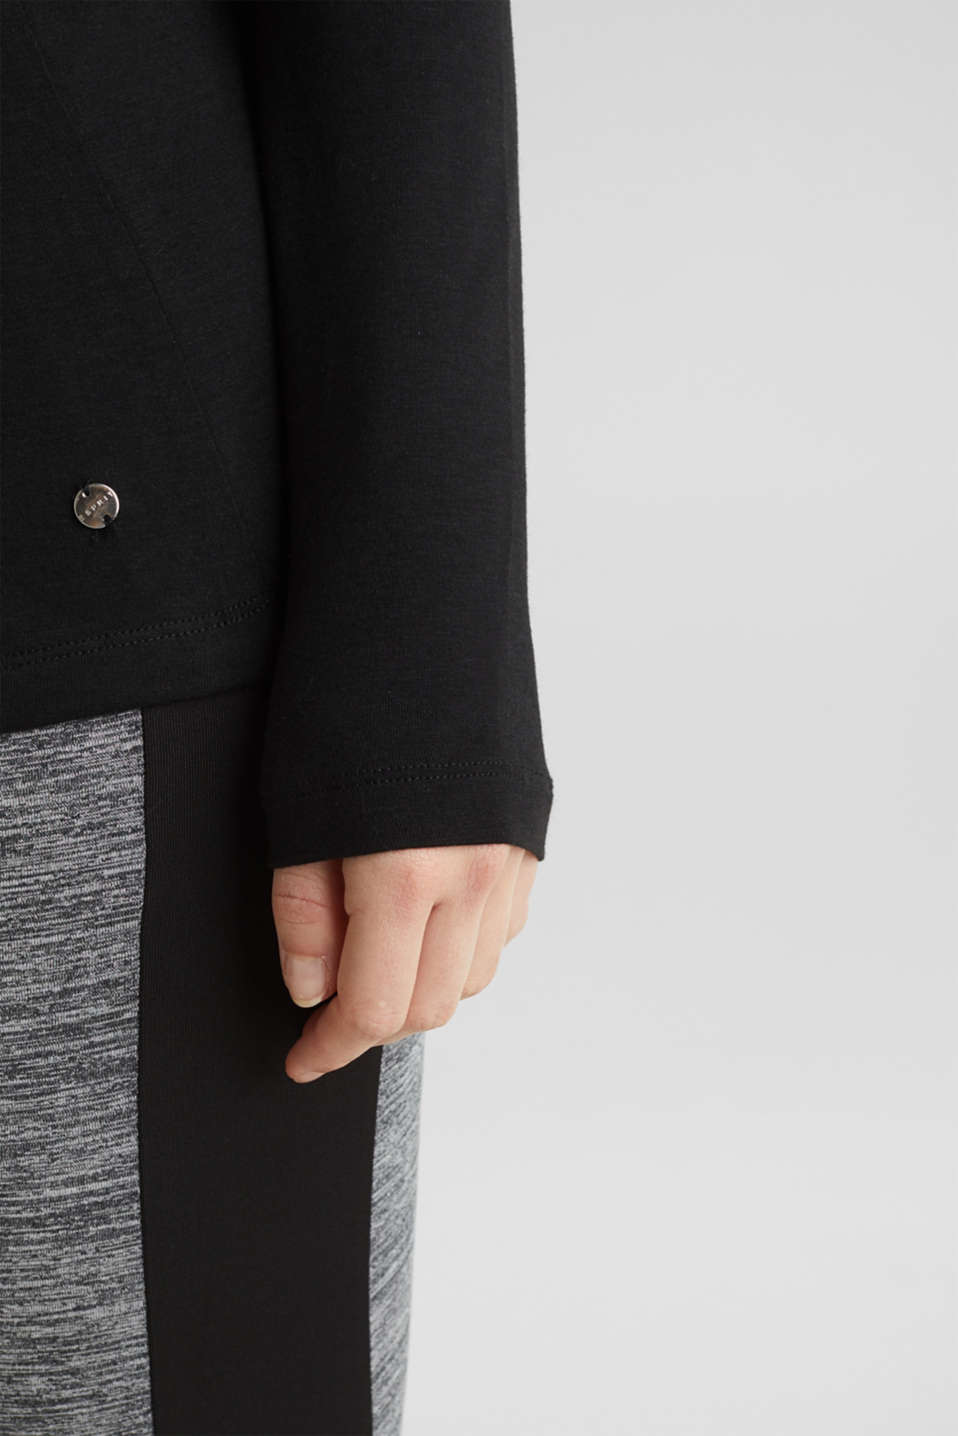 Stretch long sleeve top with contrast stitching, LCBLACK, detail image number 5